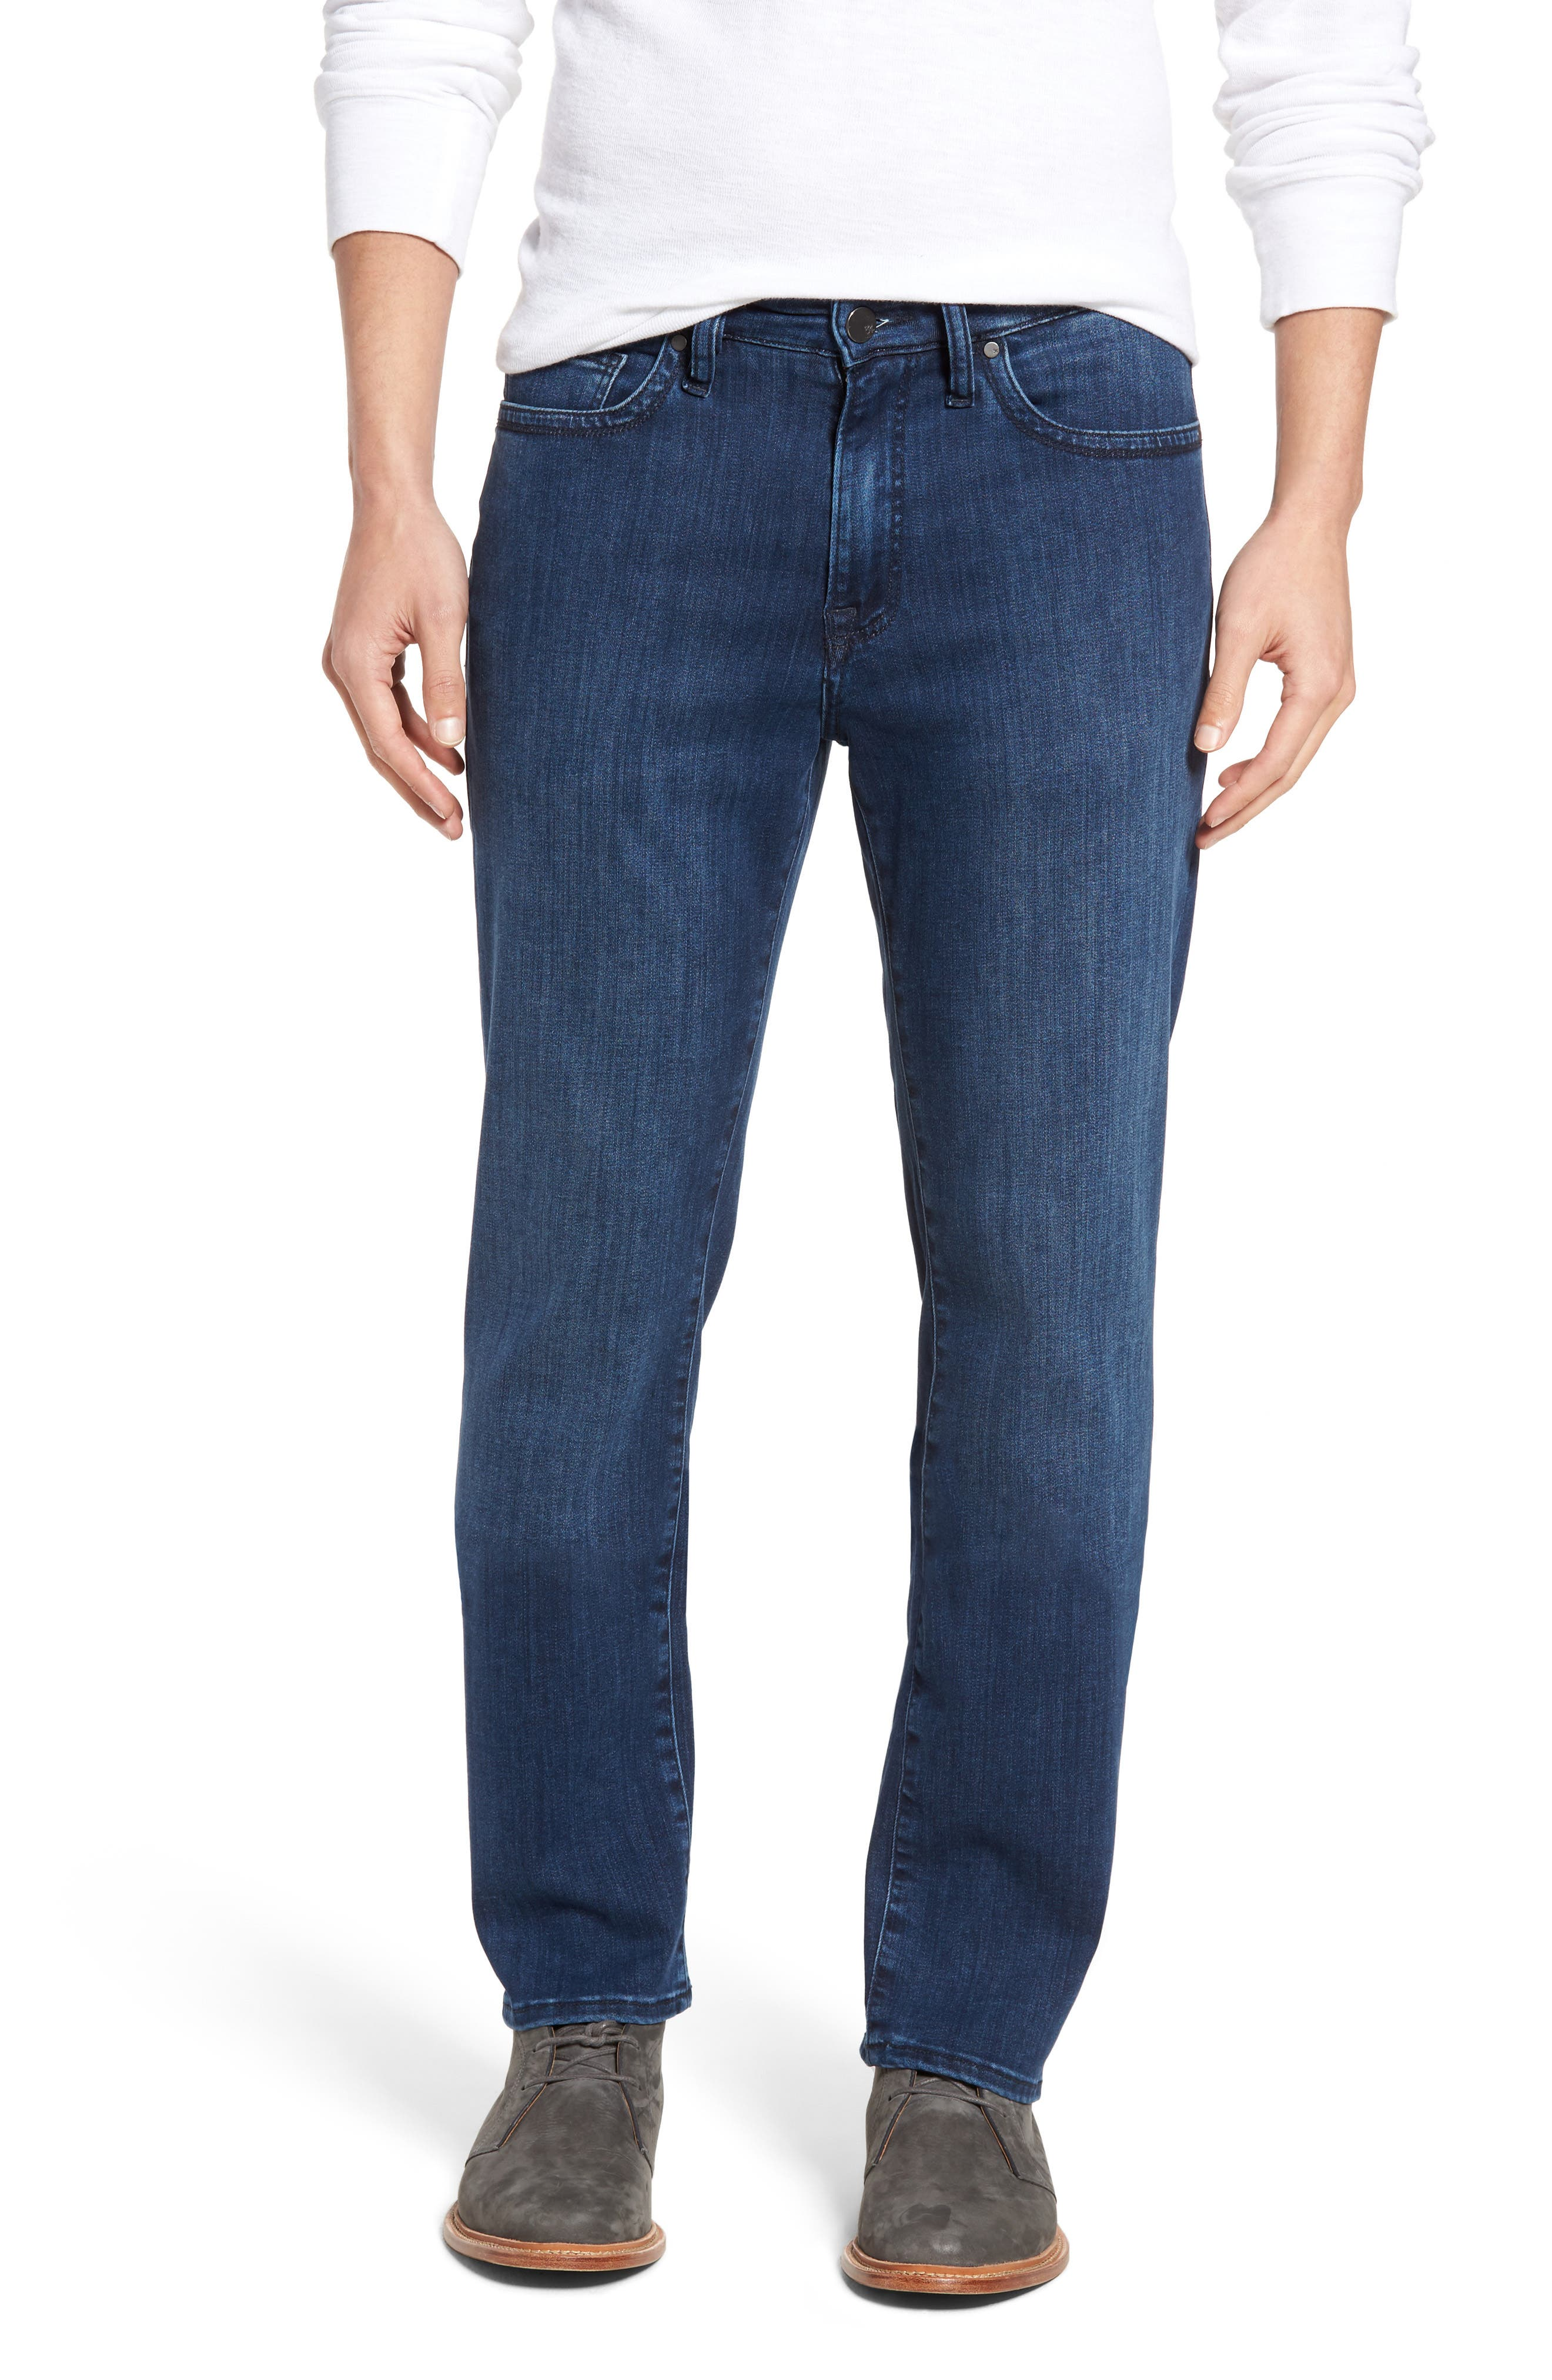 34 Heritage Charisma Relaxed Fit Jeans (Indigo Rome) (Regular & Tall)